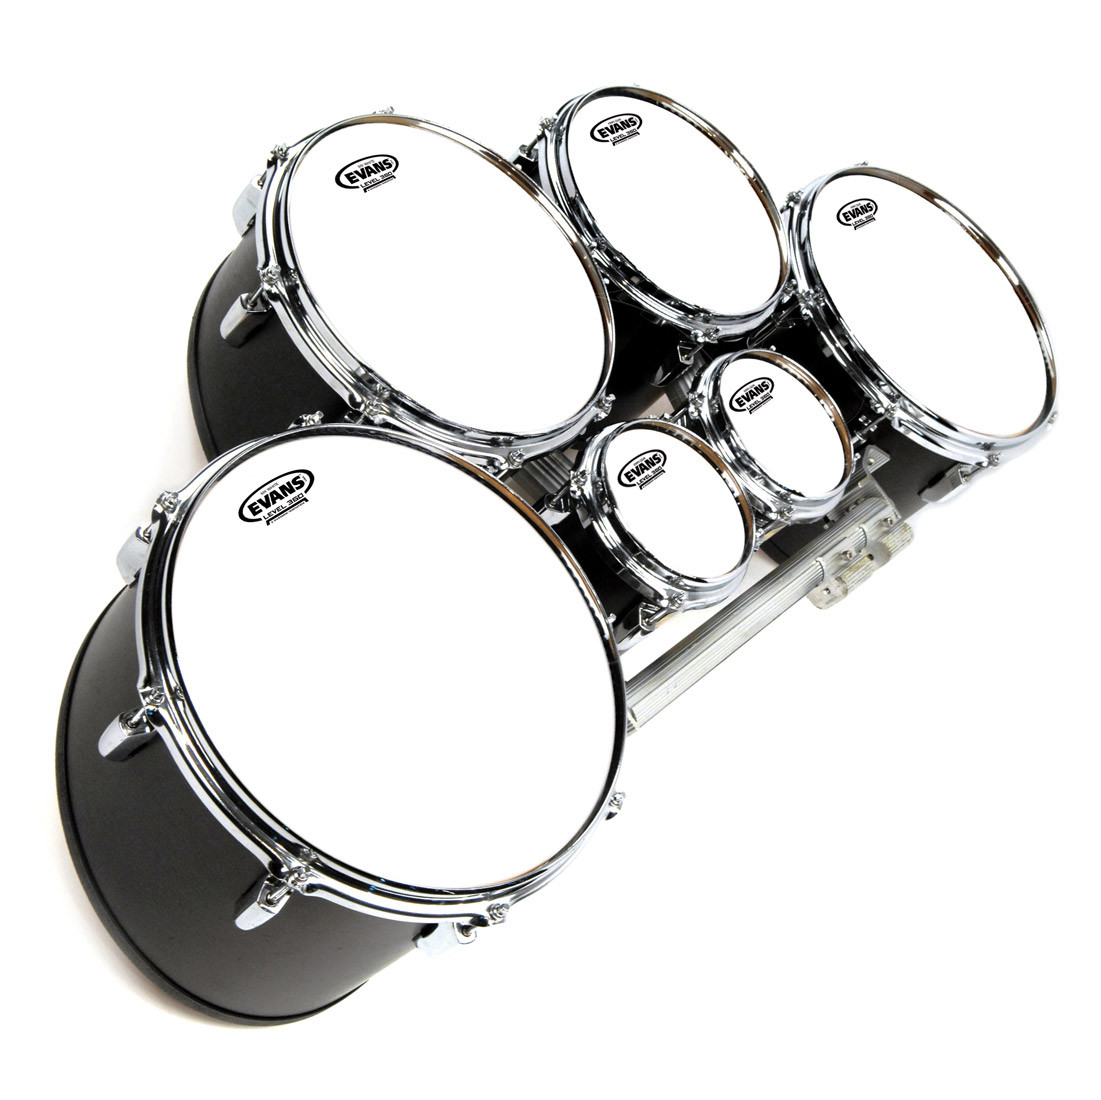 evans 06 mx marching tenor head white marching drum heads drum heads drums on sale. Black Bedroom Furniture Sets. Home Design Ideas